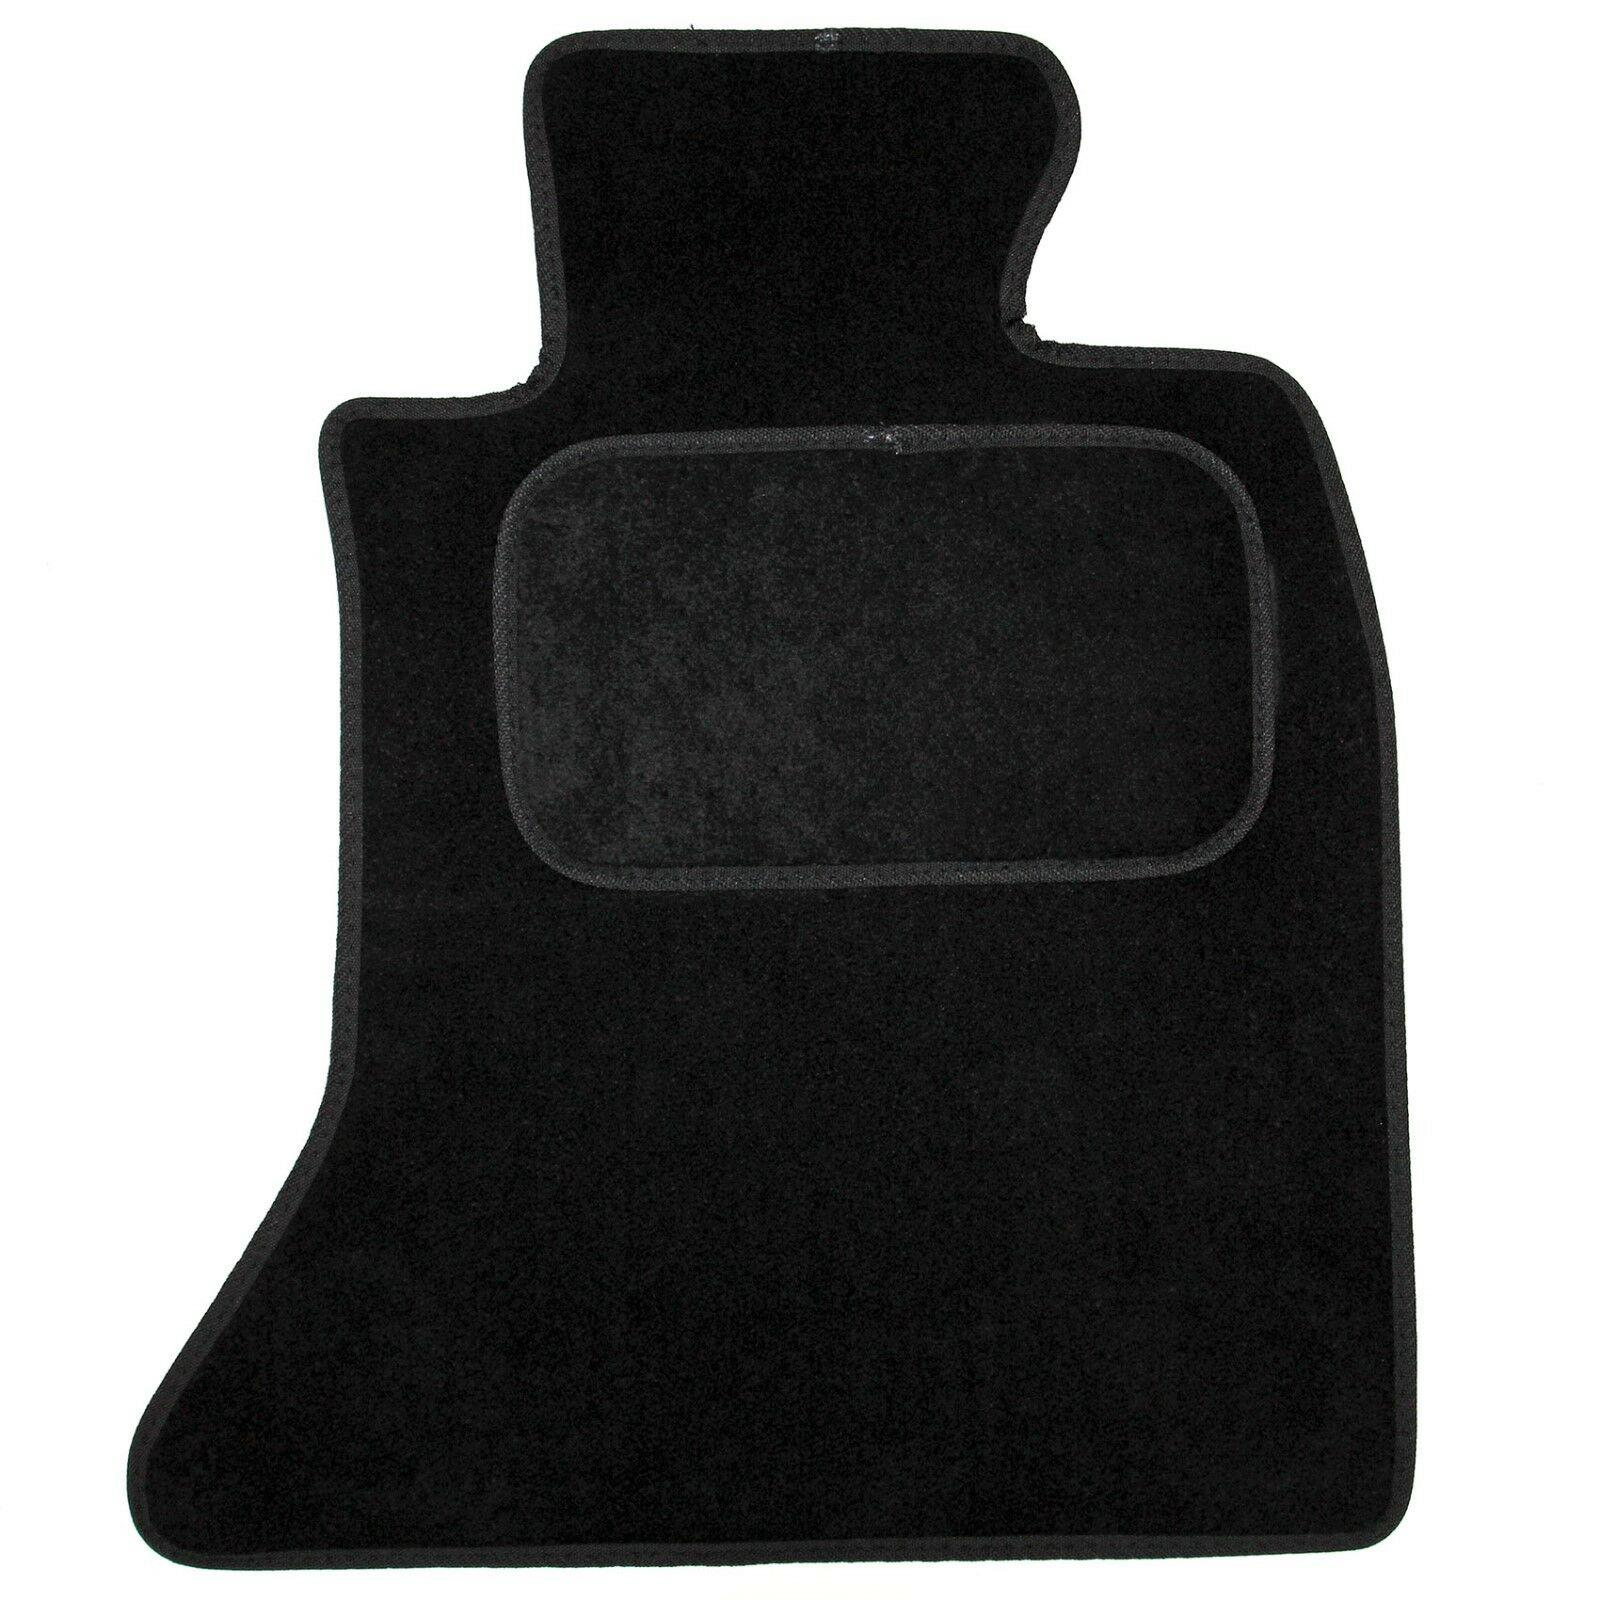 New Fits BMW X1 10 On Black Tailored Set of 4 Fitted Carpet Car Floor Mats